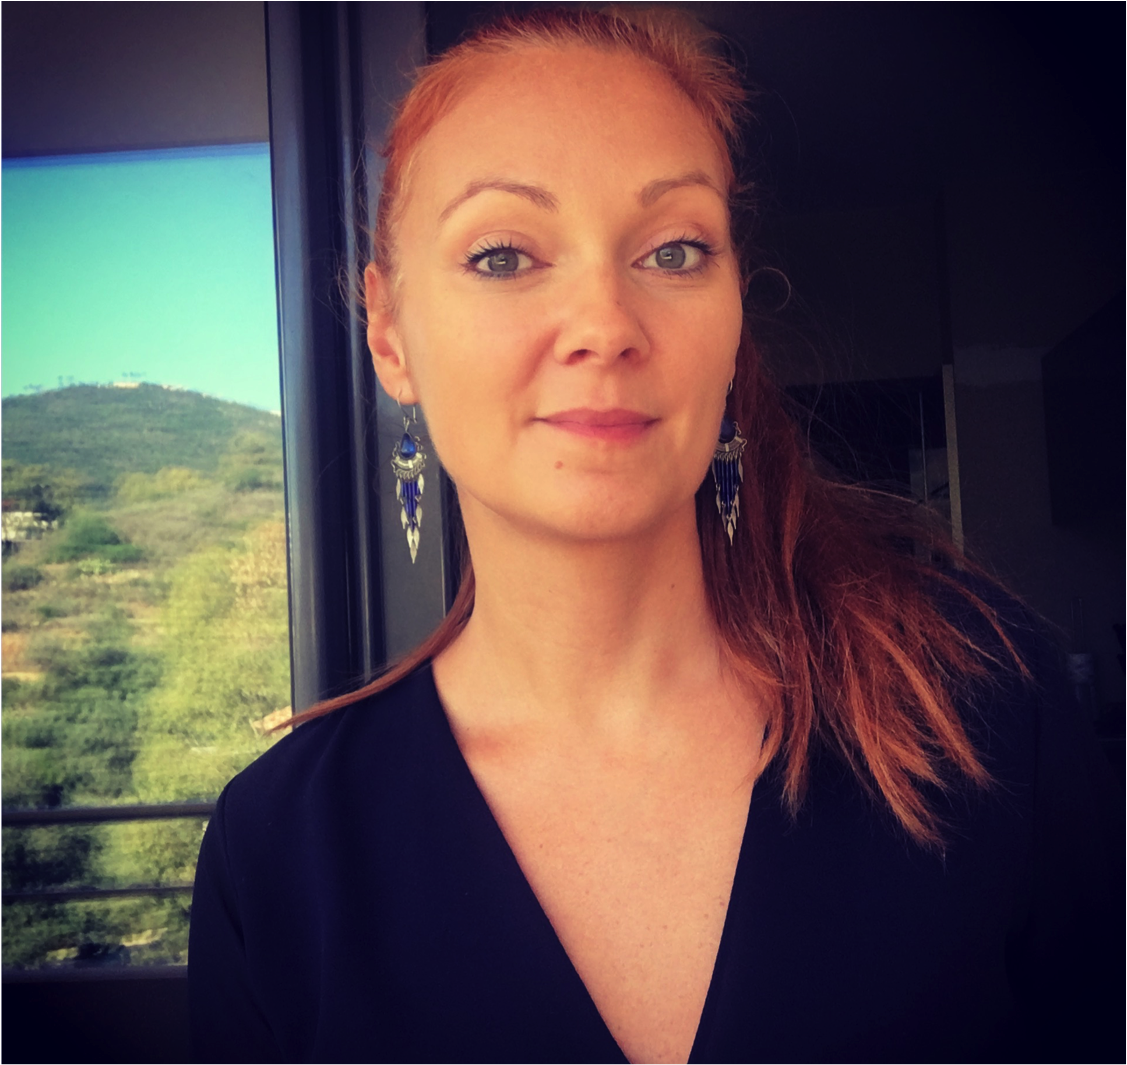 BE ONE Elodie Buscoz - Lecture intuitive - Mentorat - Coaching d'affaires - Guidance spirituelle - Profilage RH - Monaco - France